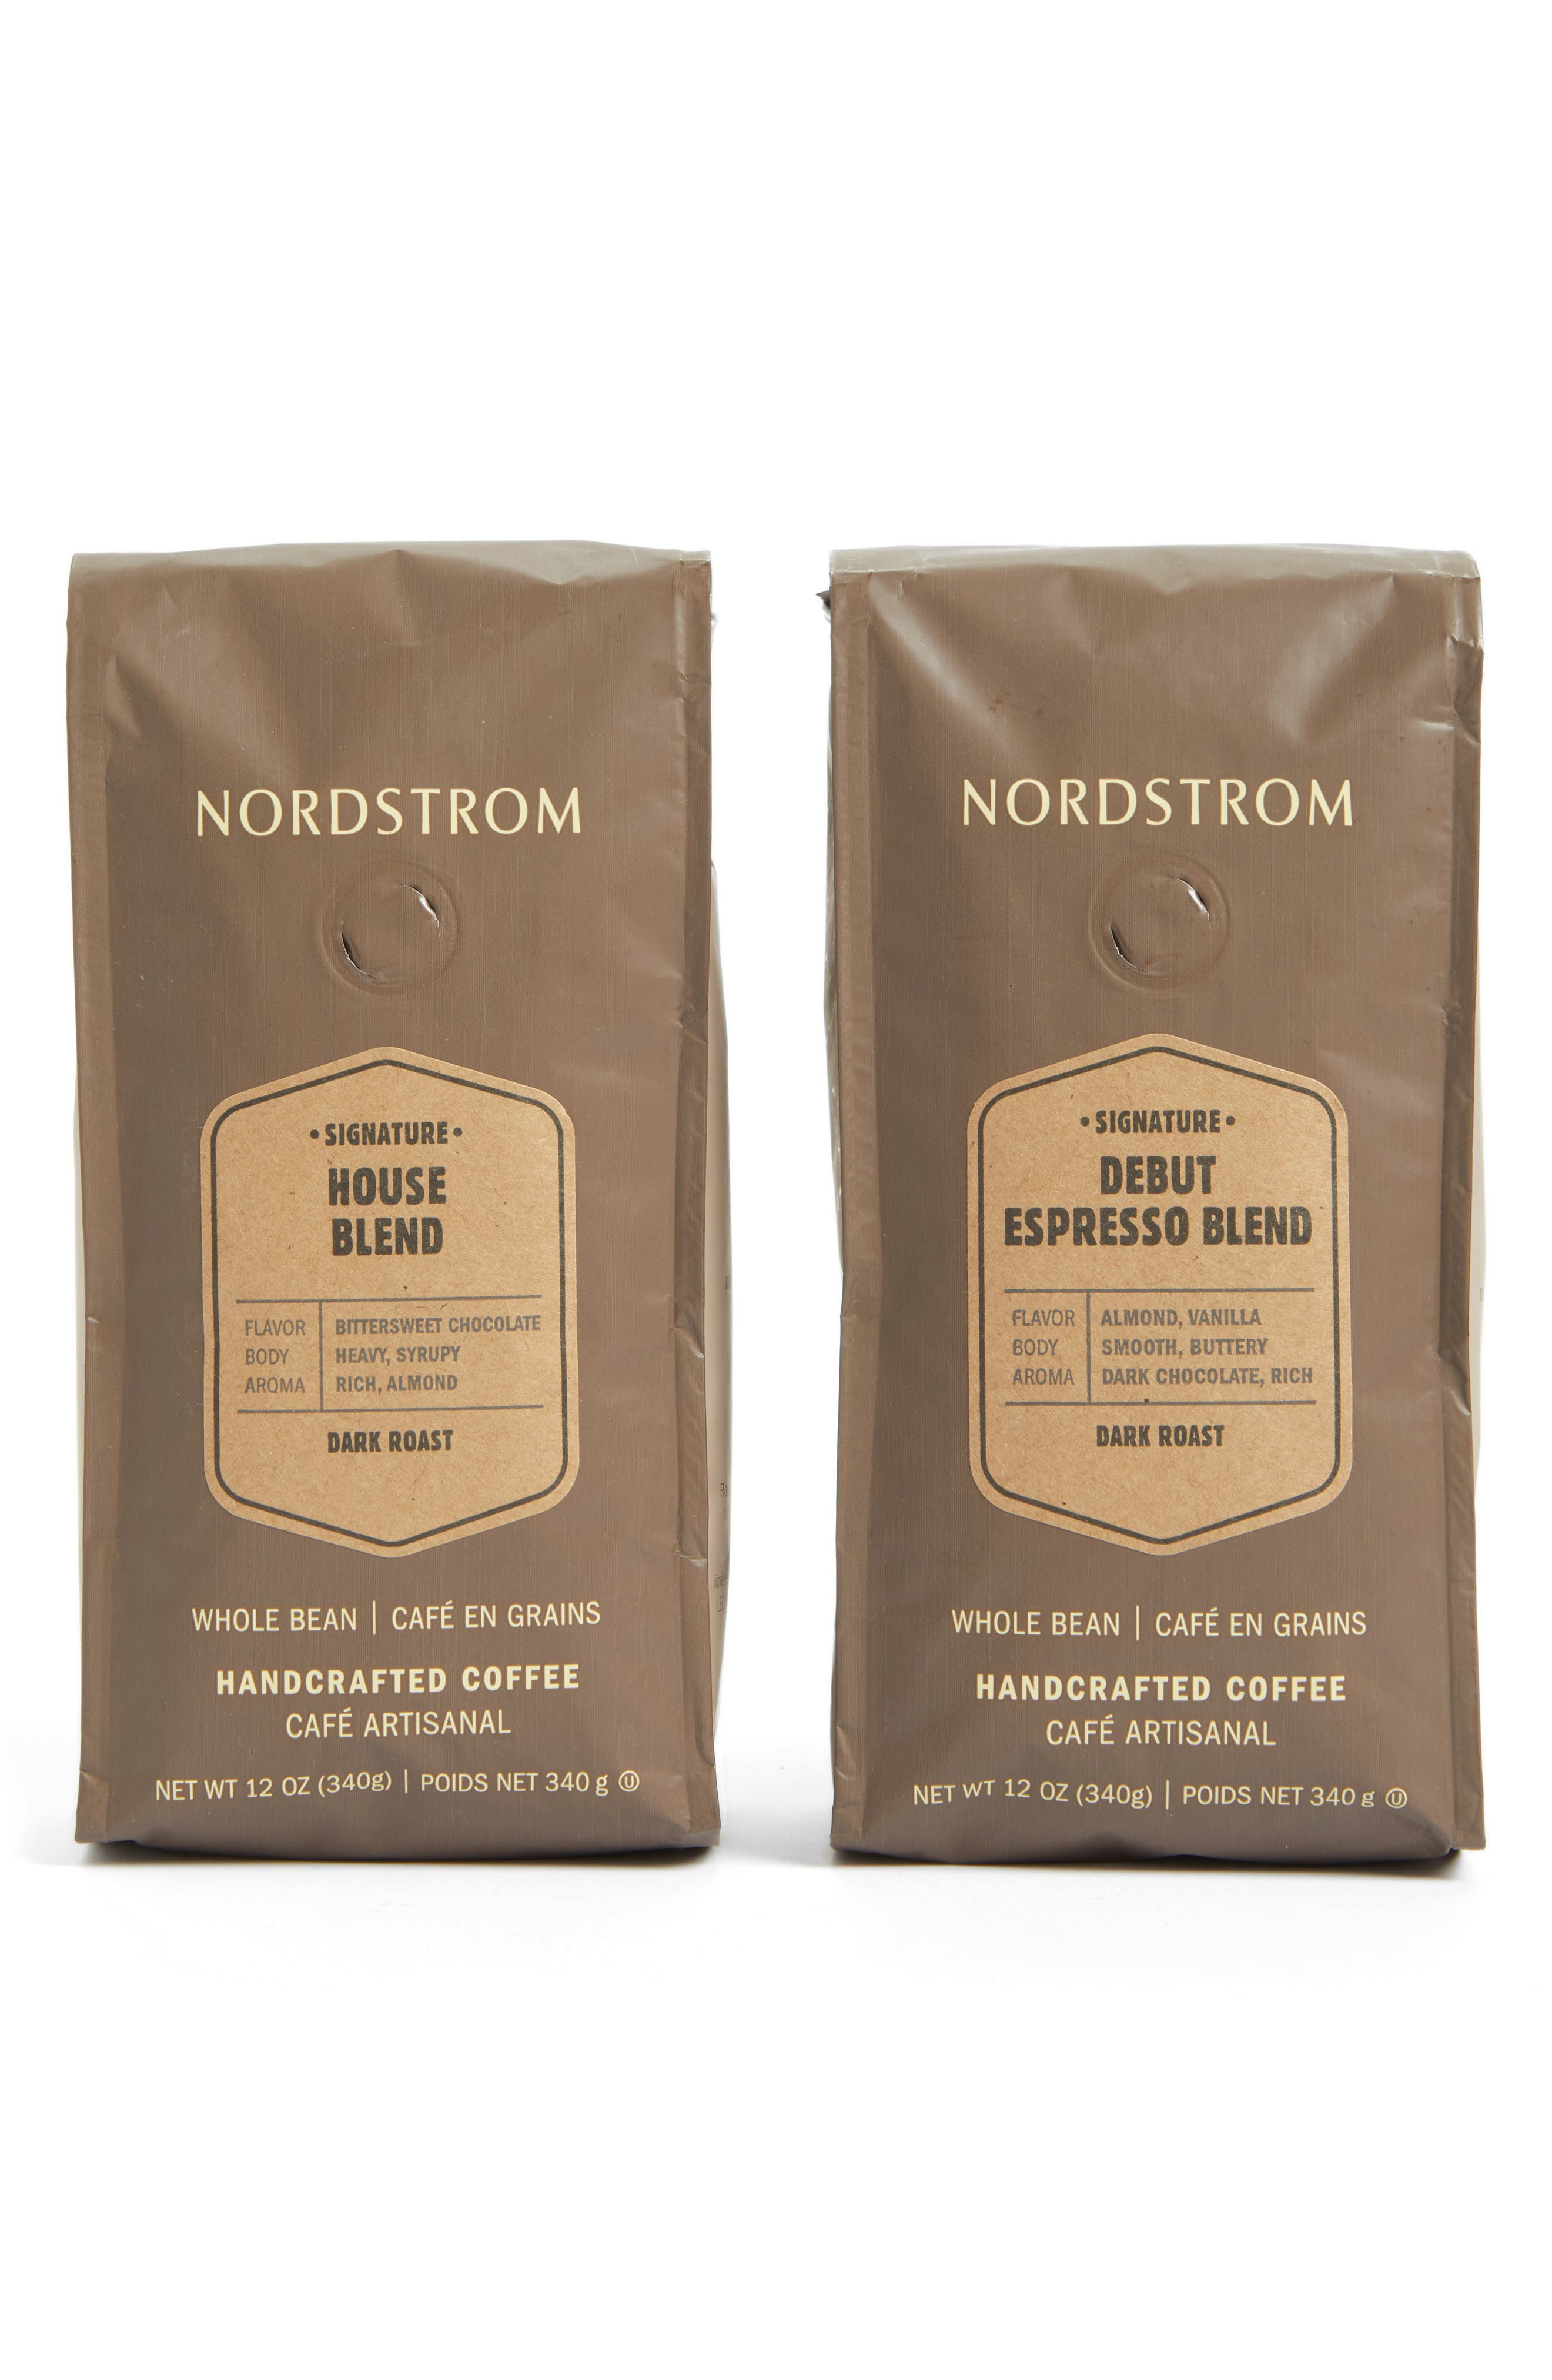 Alternate Image 1 Selected - Nordstrom Coffee 'Debut Espresso Blend' & 'House Blend' Whole Bean Coffee (2-Pack)